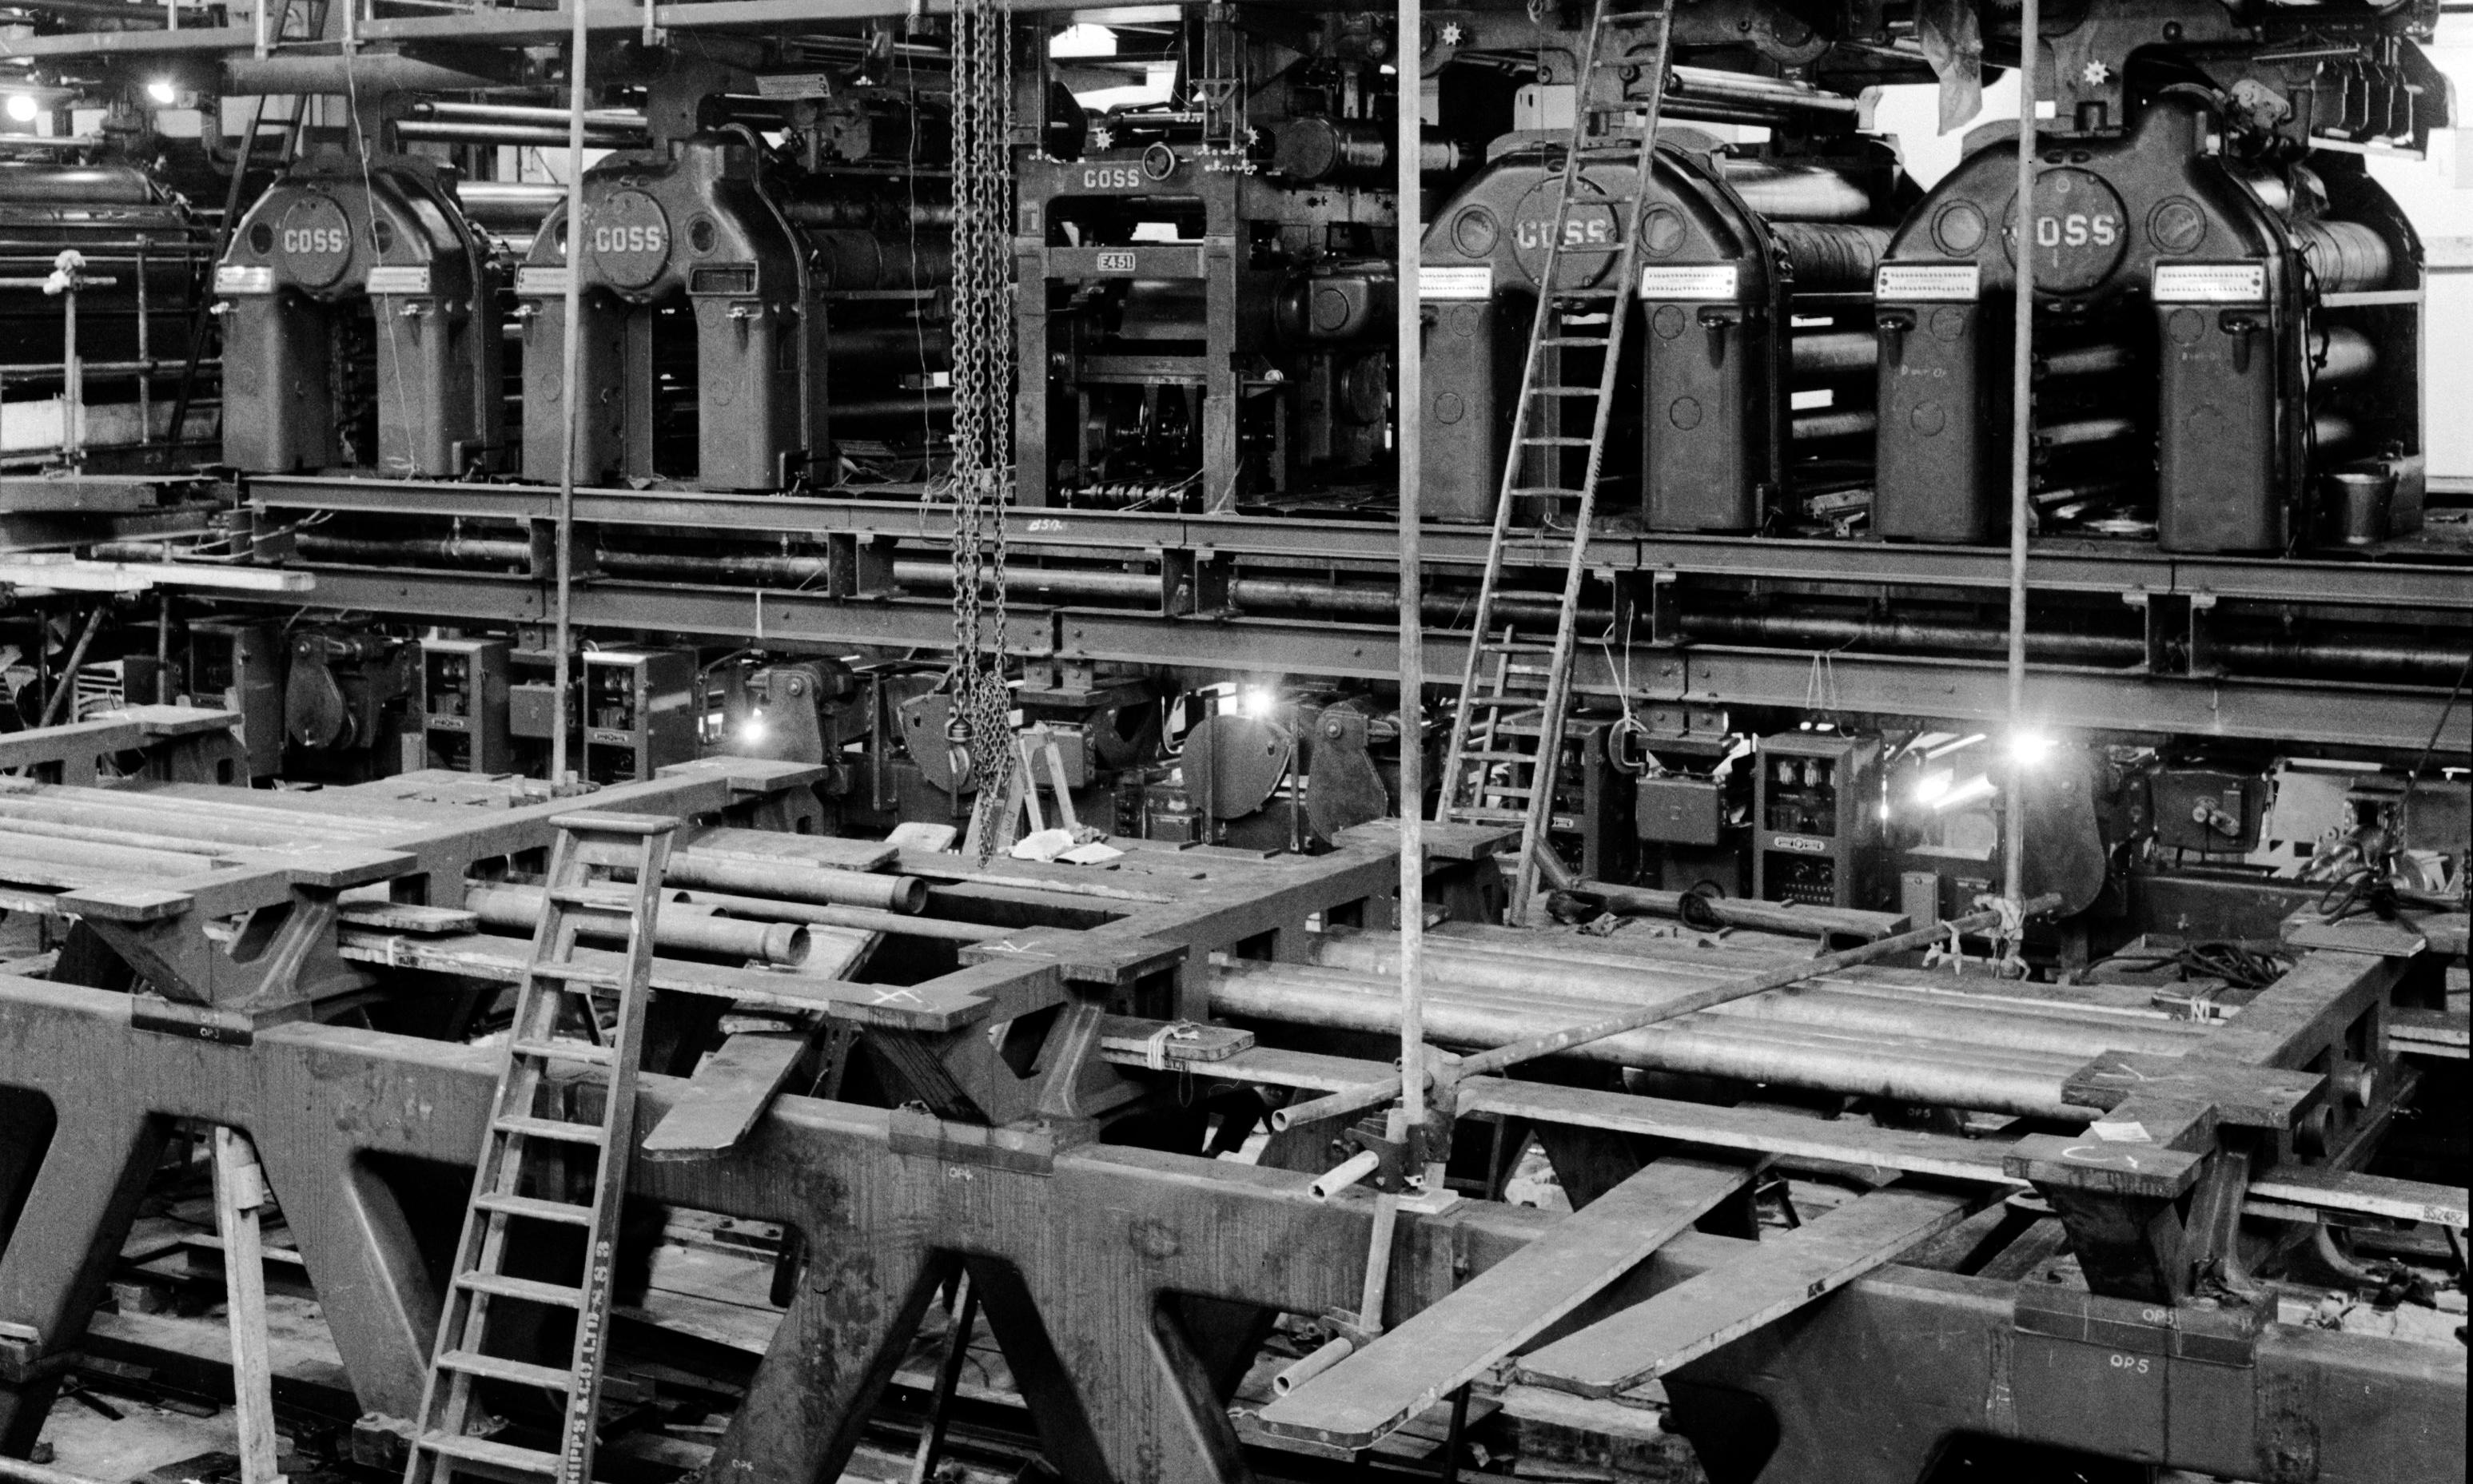 My dad's print works wasn't just a business – it was an ink-spattered dream factory